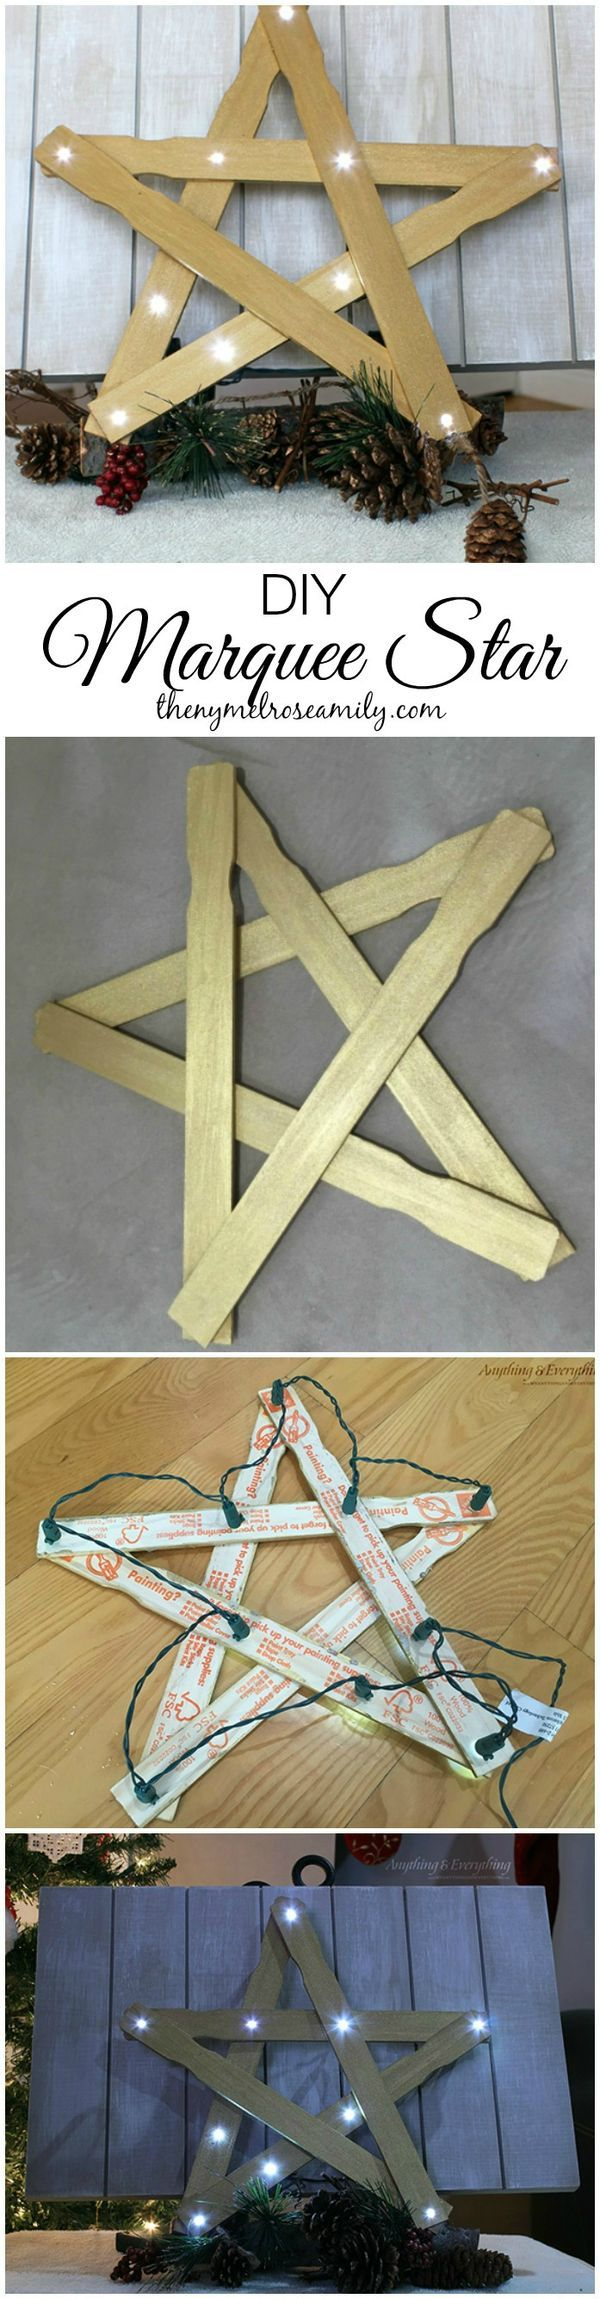 DIY Christmas Decorations: Marquee Star.